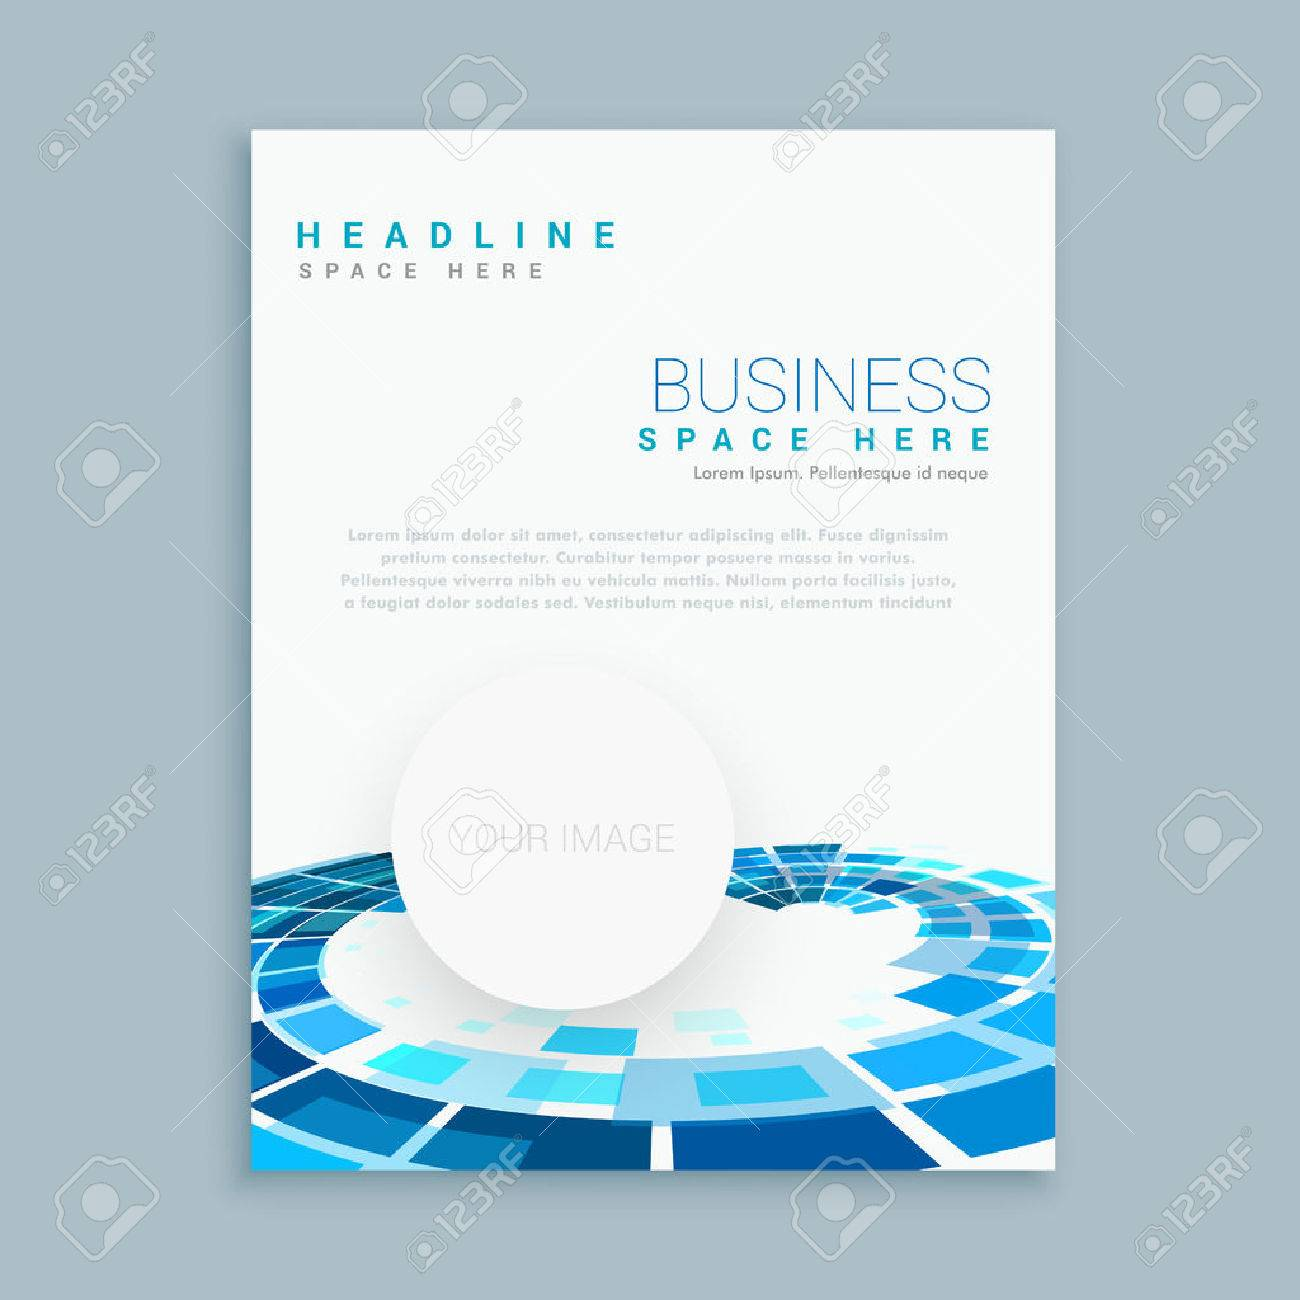 abstract business brochure template - 56317160